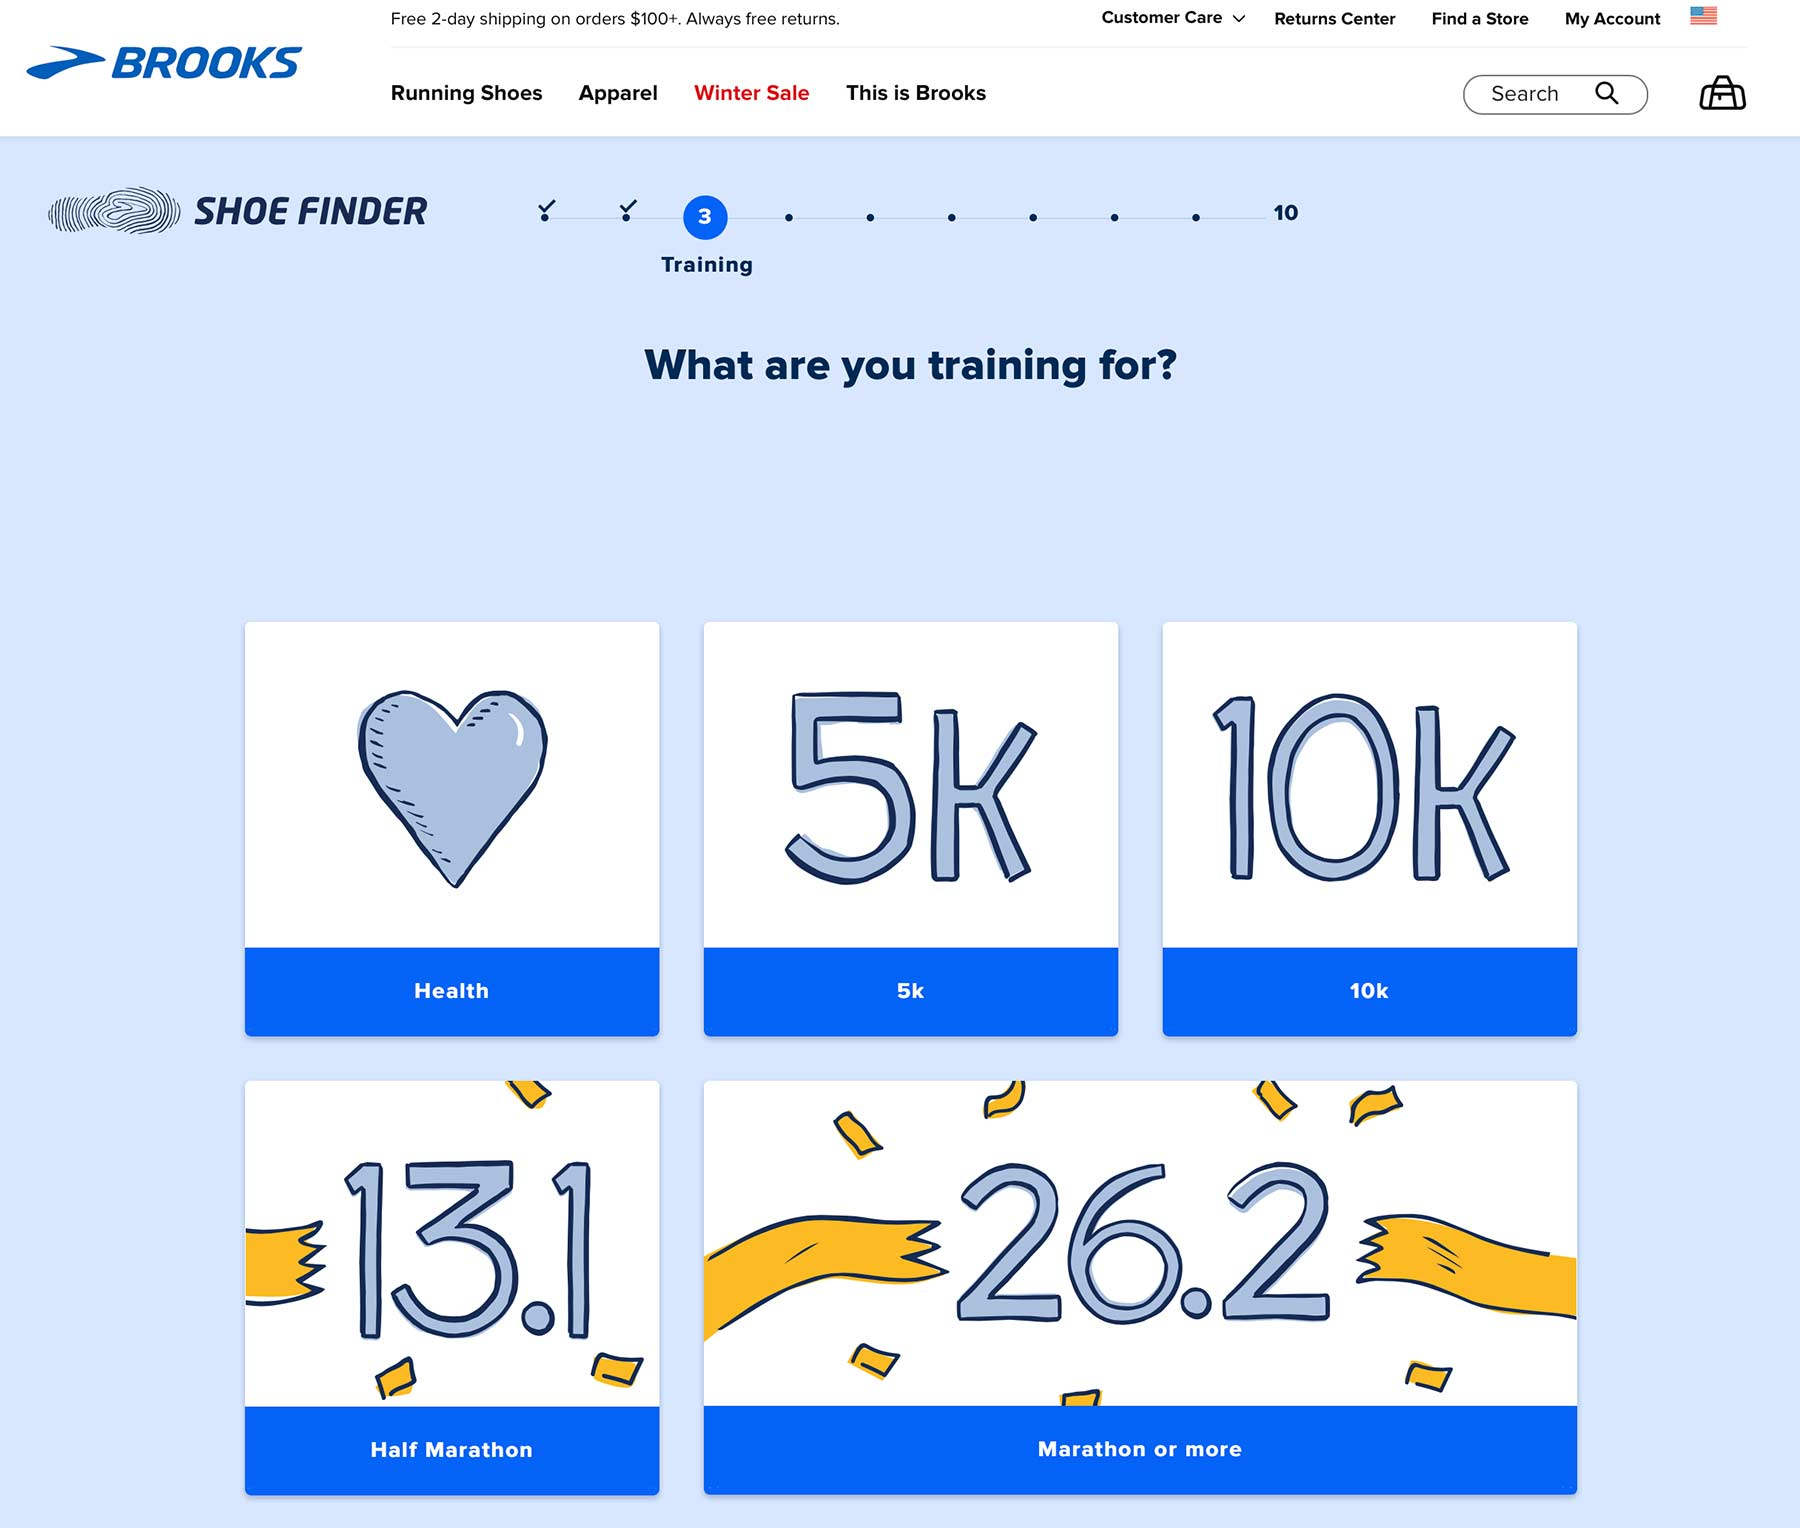 Brooks' running shoe quiz includes asking about one's running goals